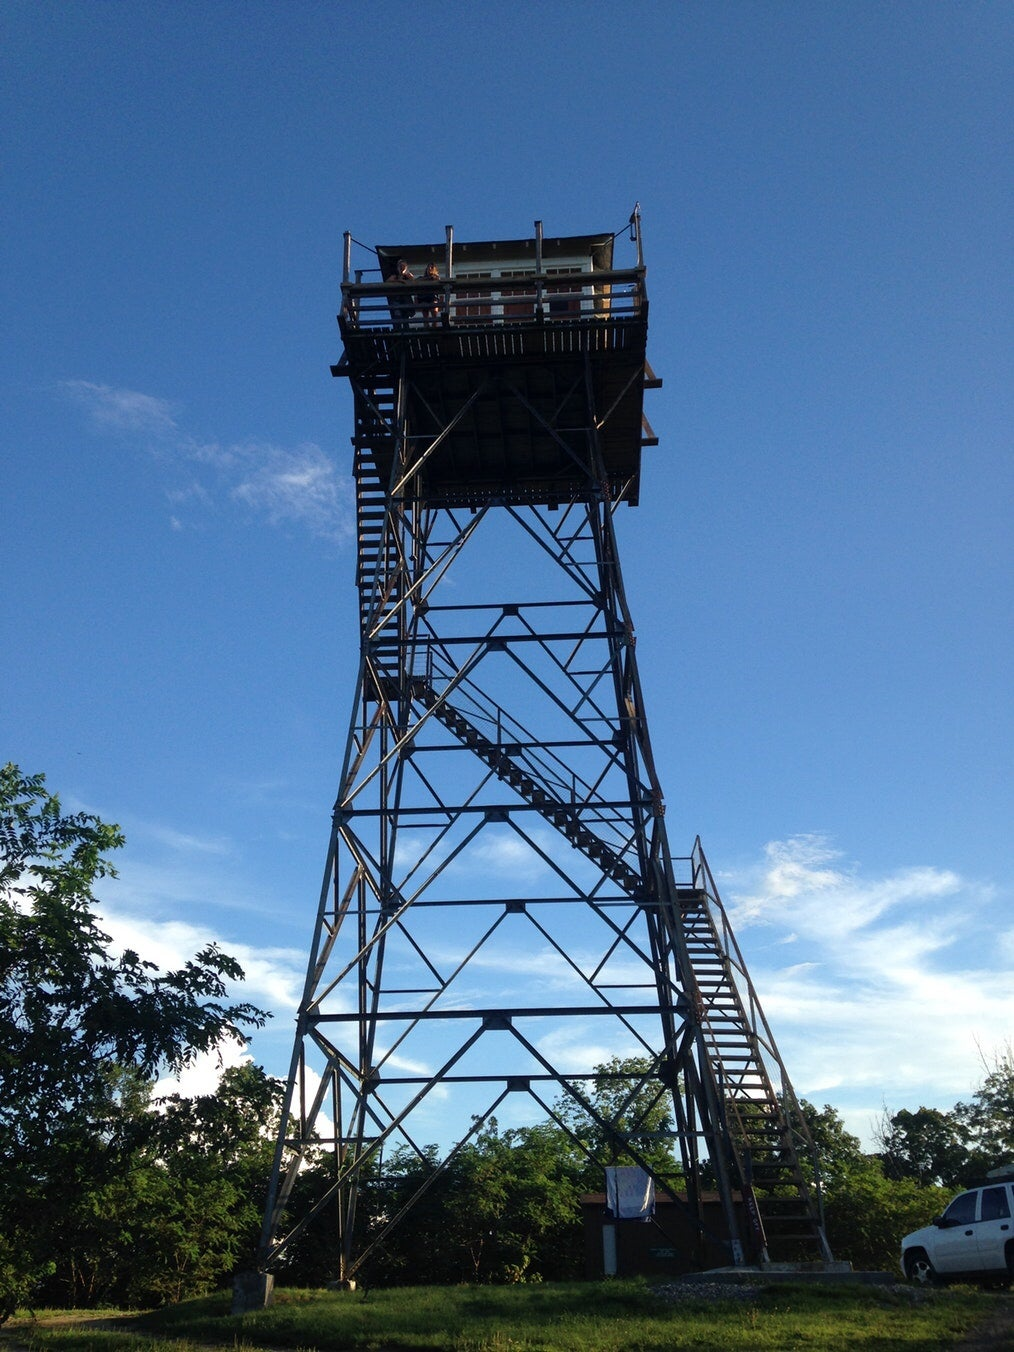 worms eye view of the thorny mountain fire tower on a clear day